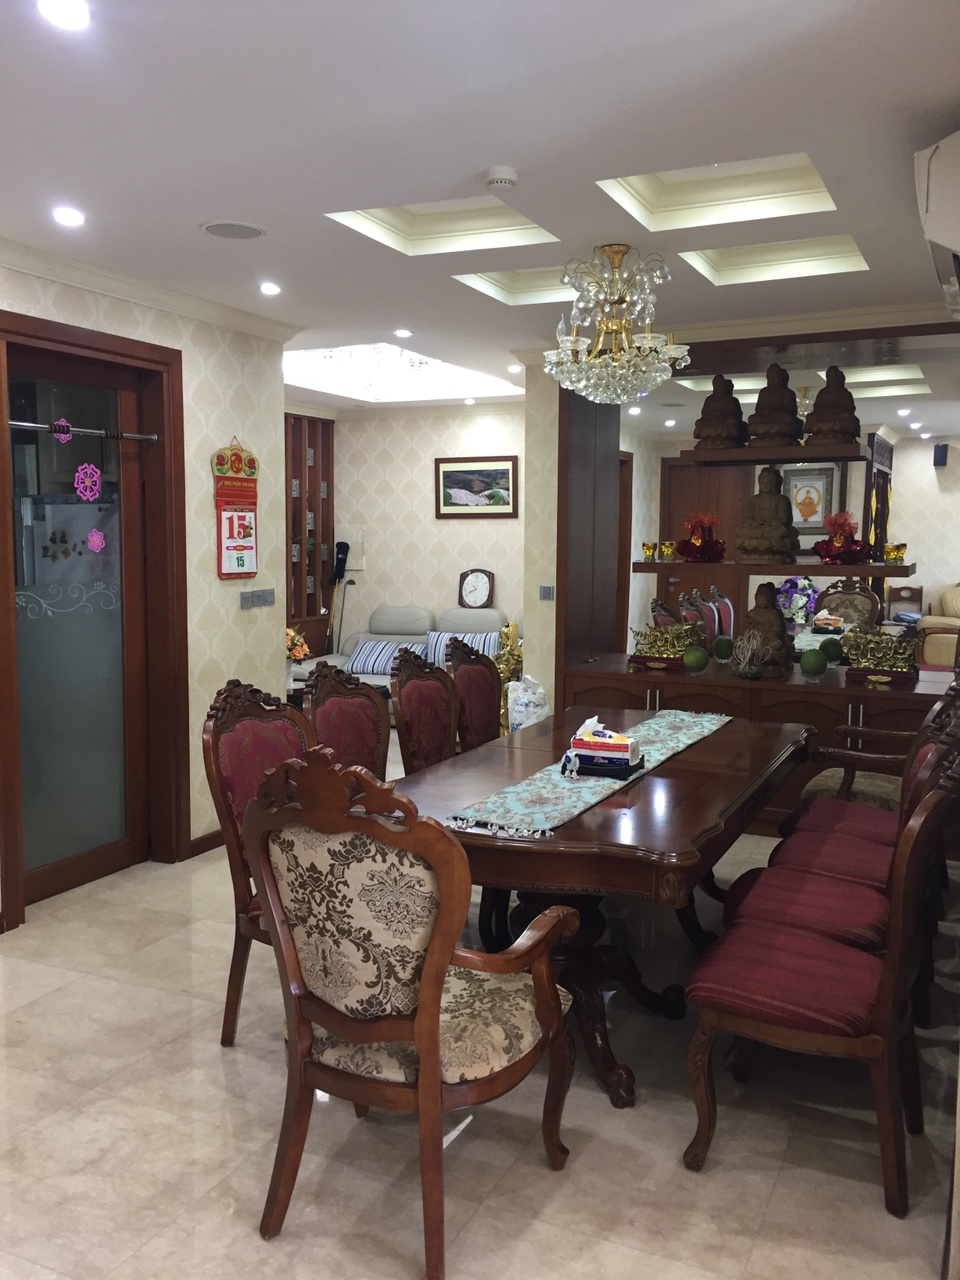 3 Bedroom Apartments Tampa: Three-bedroom Apartment L1 Ciputra Hanoi For Rent